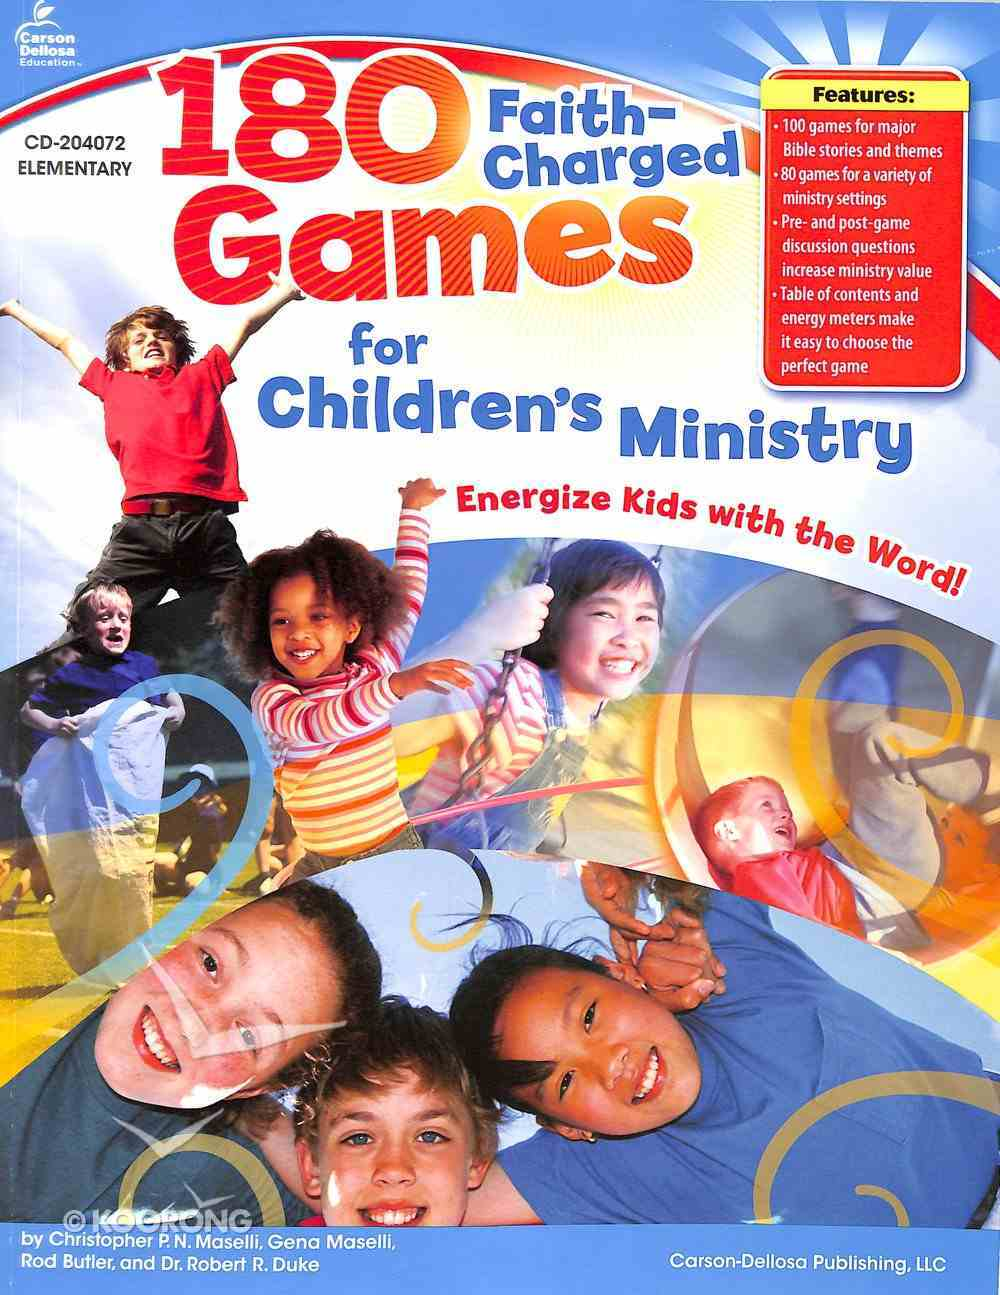 180 Faith-Charged Games For Children's Ministry (Elementary) Paperback